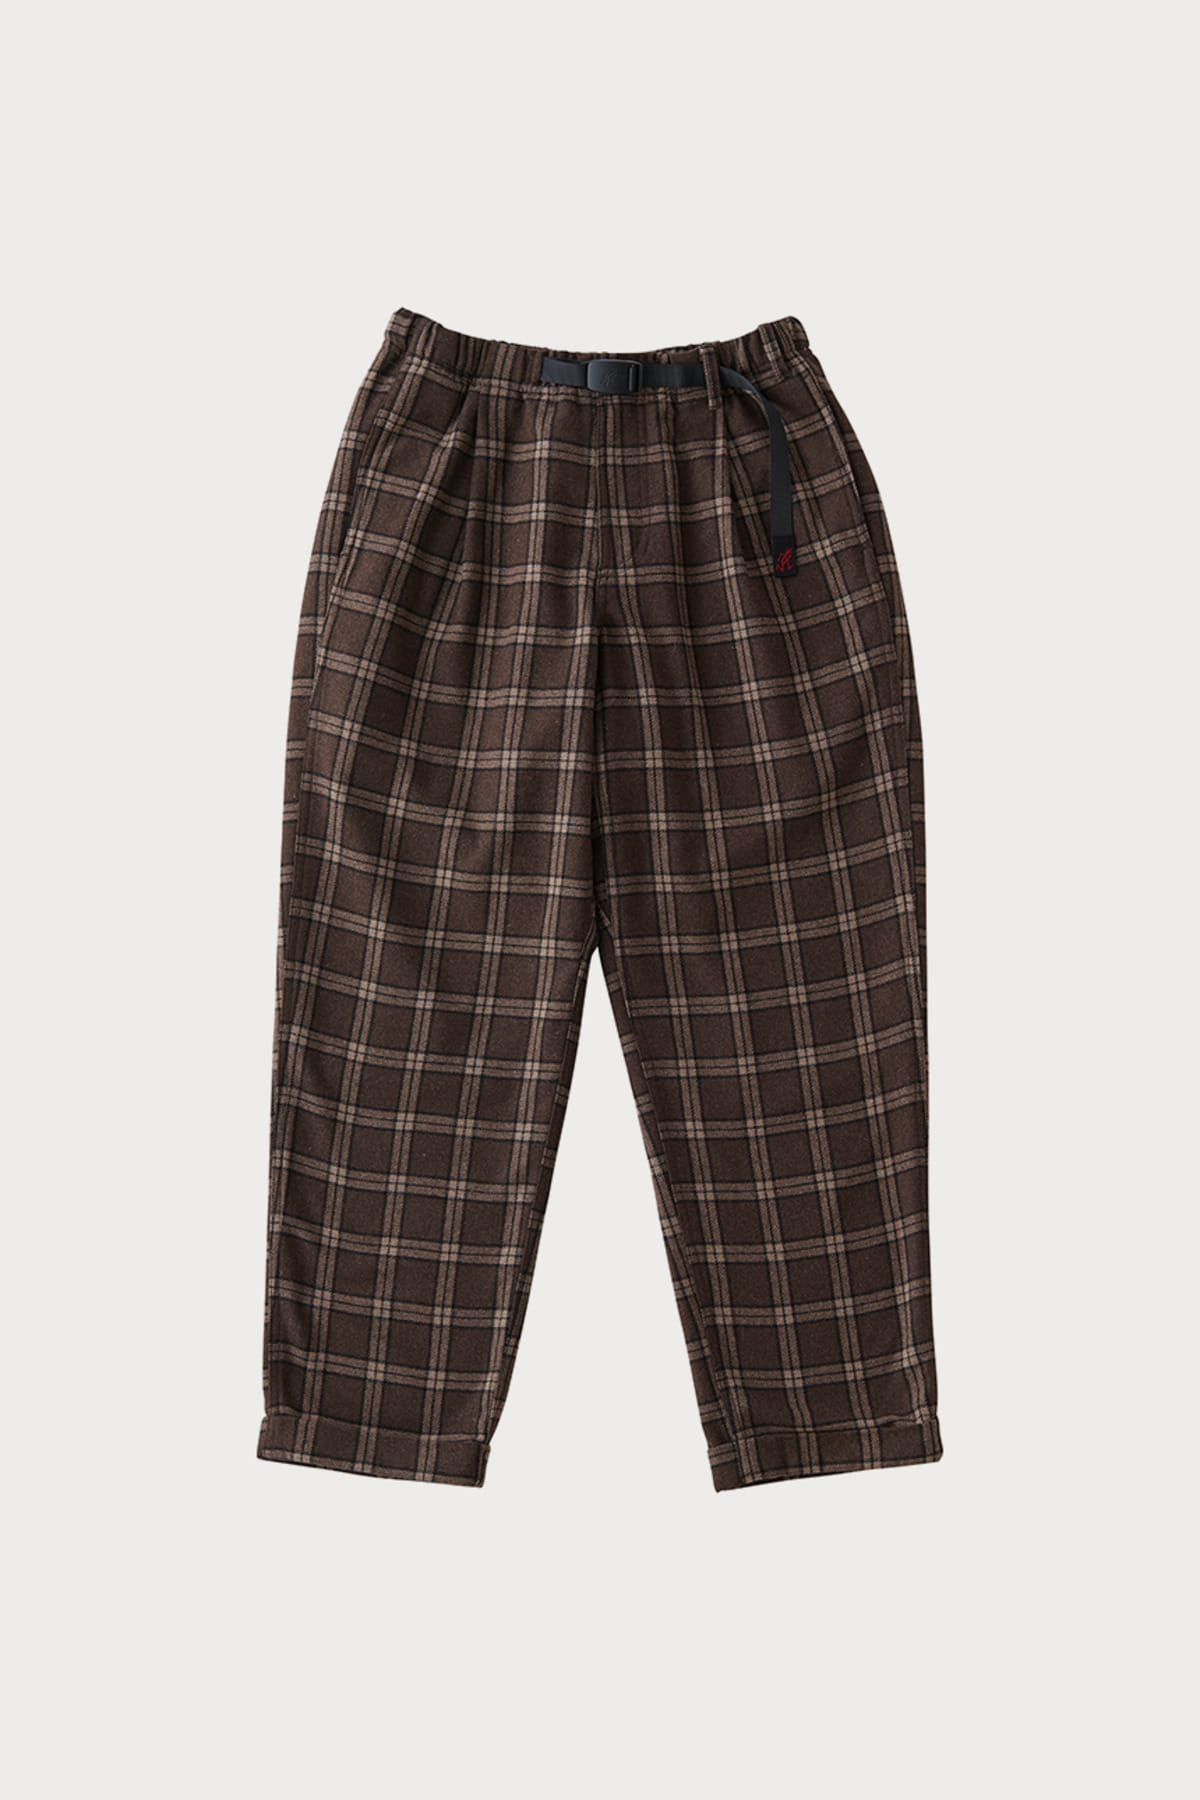 WOOL BLEND TUCK TAPERED PANTS BROWN CHECK